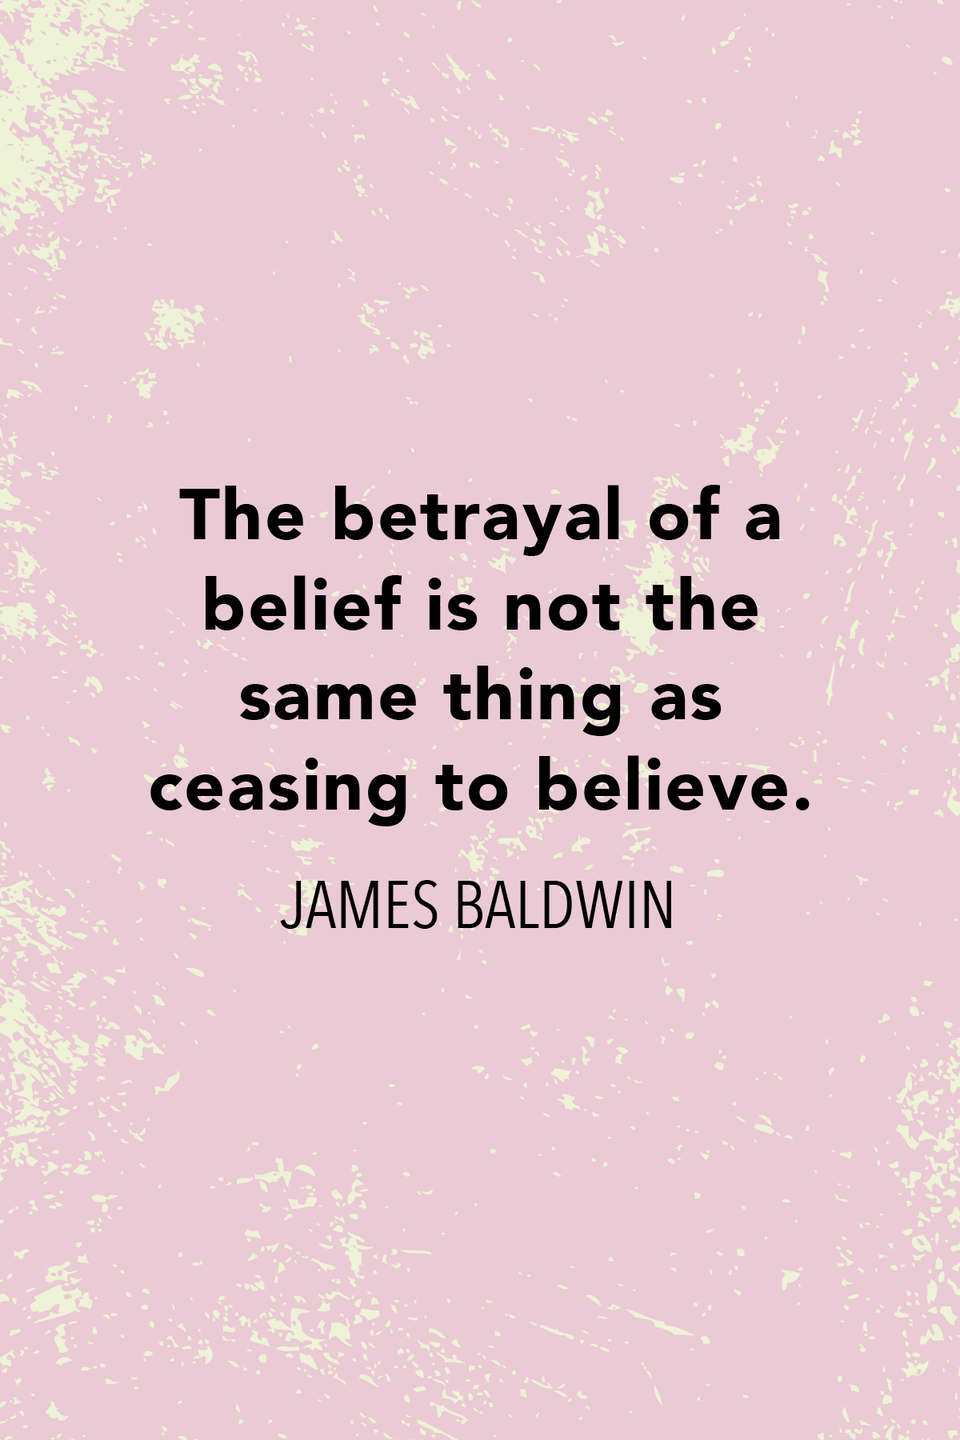 """<p>""""The betrayal of a belief is not the same thing as ceasing to believe,"""" Baldwin <a href=""""https://harpers.org/archive/1953/10/stranger-in-the-village/"""" rel=""""nofollow noopener"""" target=""""_blank"""" data-ylk=""""slk:wrote in Harper's Magazine in 1953"""" class=""""link rapid-noclick-resp"""">wrote in <em>Harper's Magazine </em>in 1953</a>.</p>"""